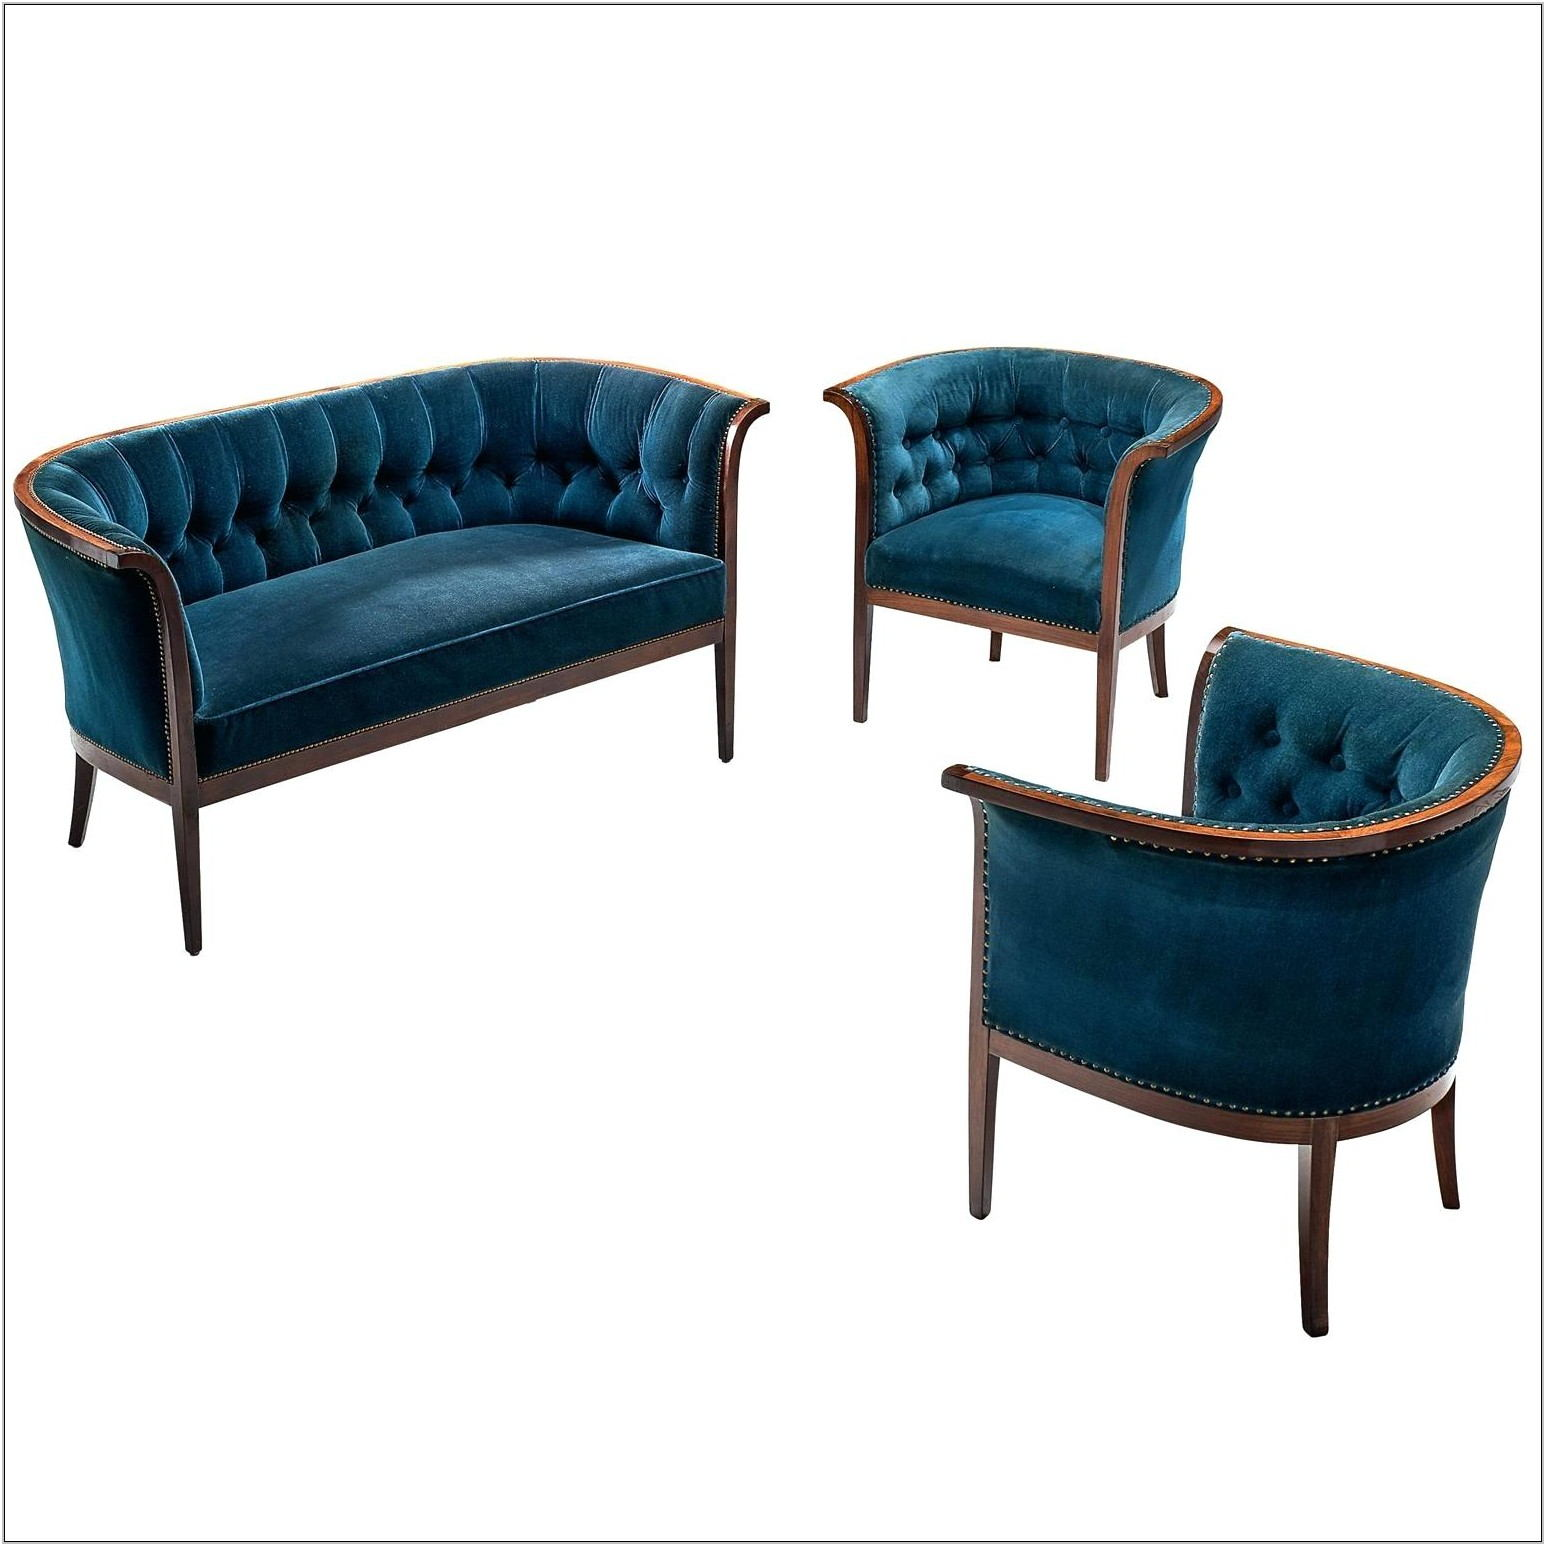 Teal Chairs For Living Room